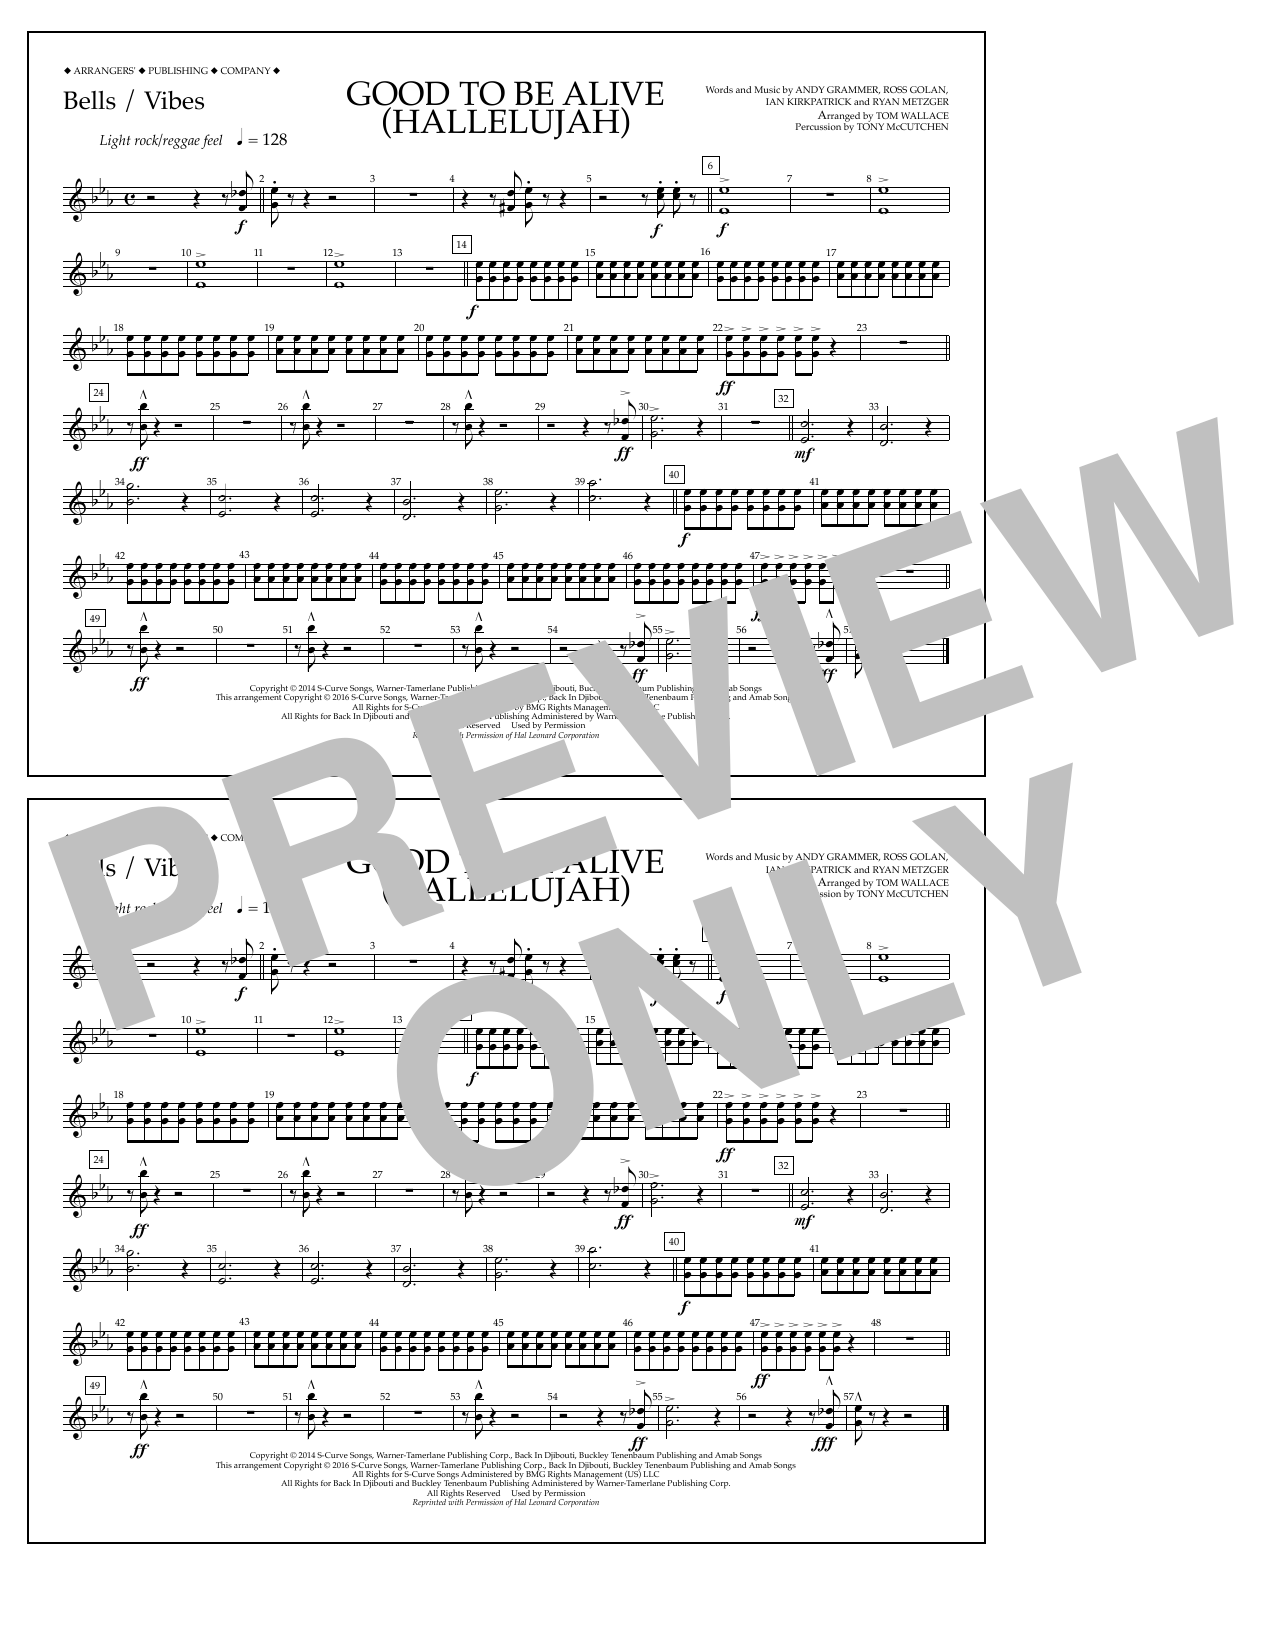 Good to Be Alive (Hallelujah) - Bells/Vibes Sheet Music